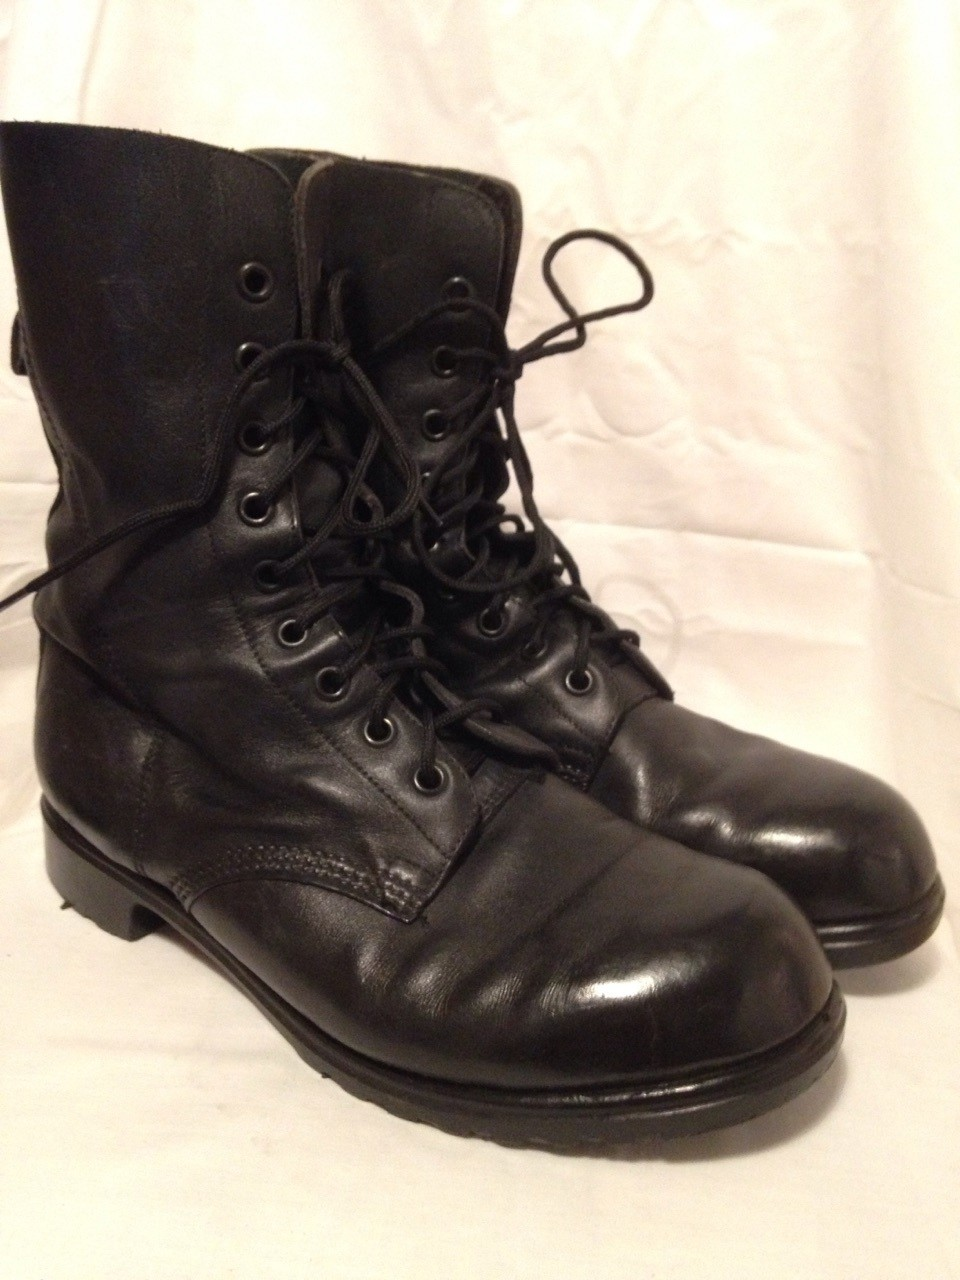 British Army Size 11m High Leg Boots